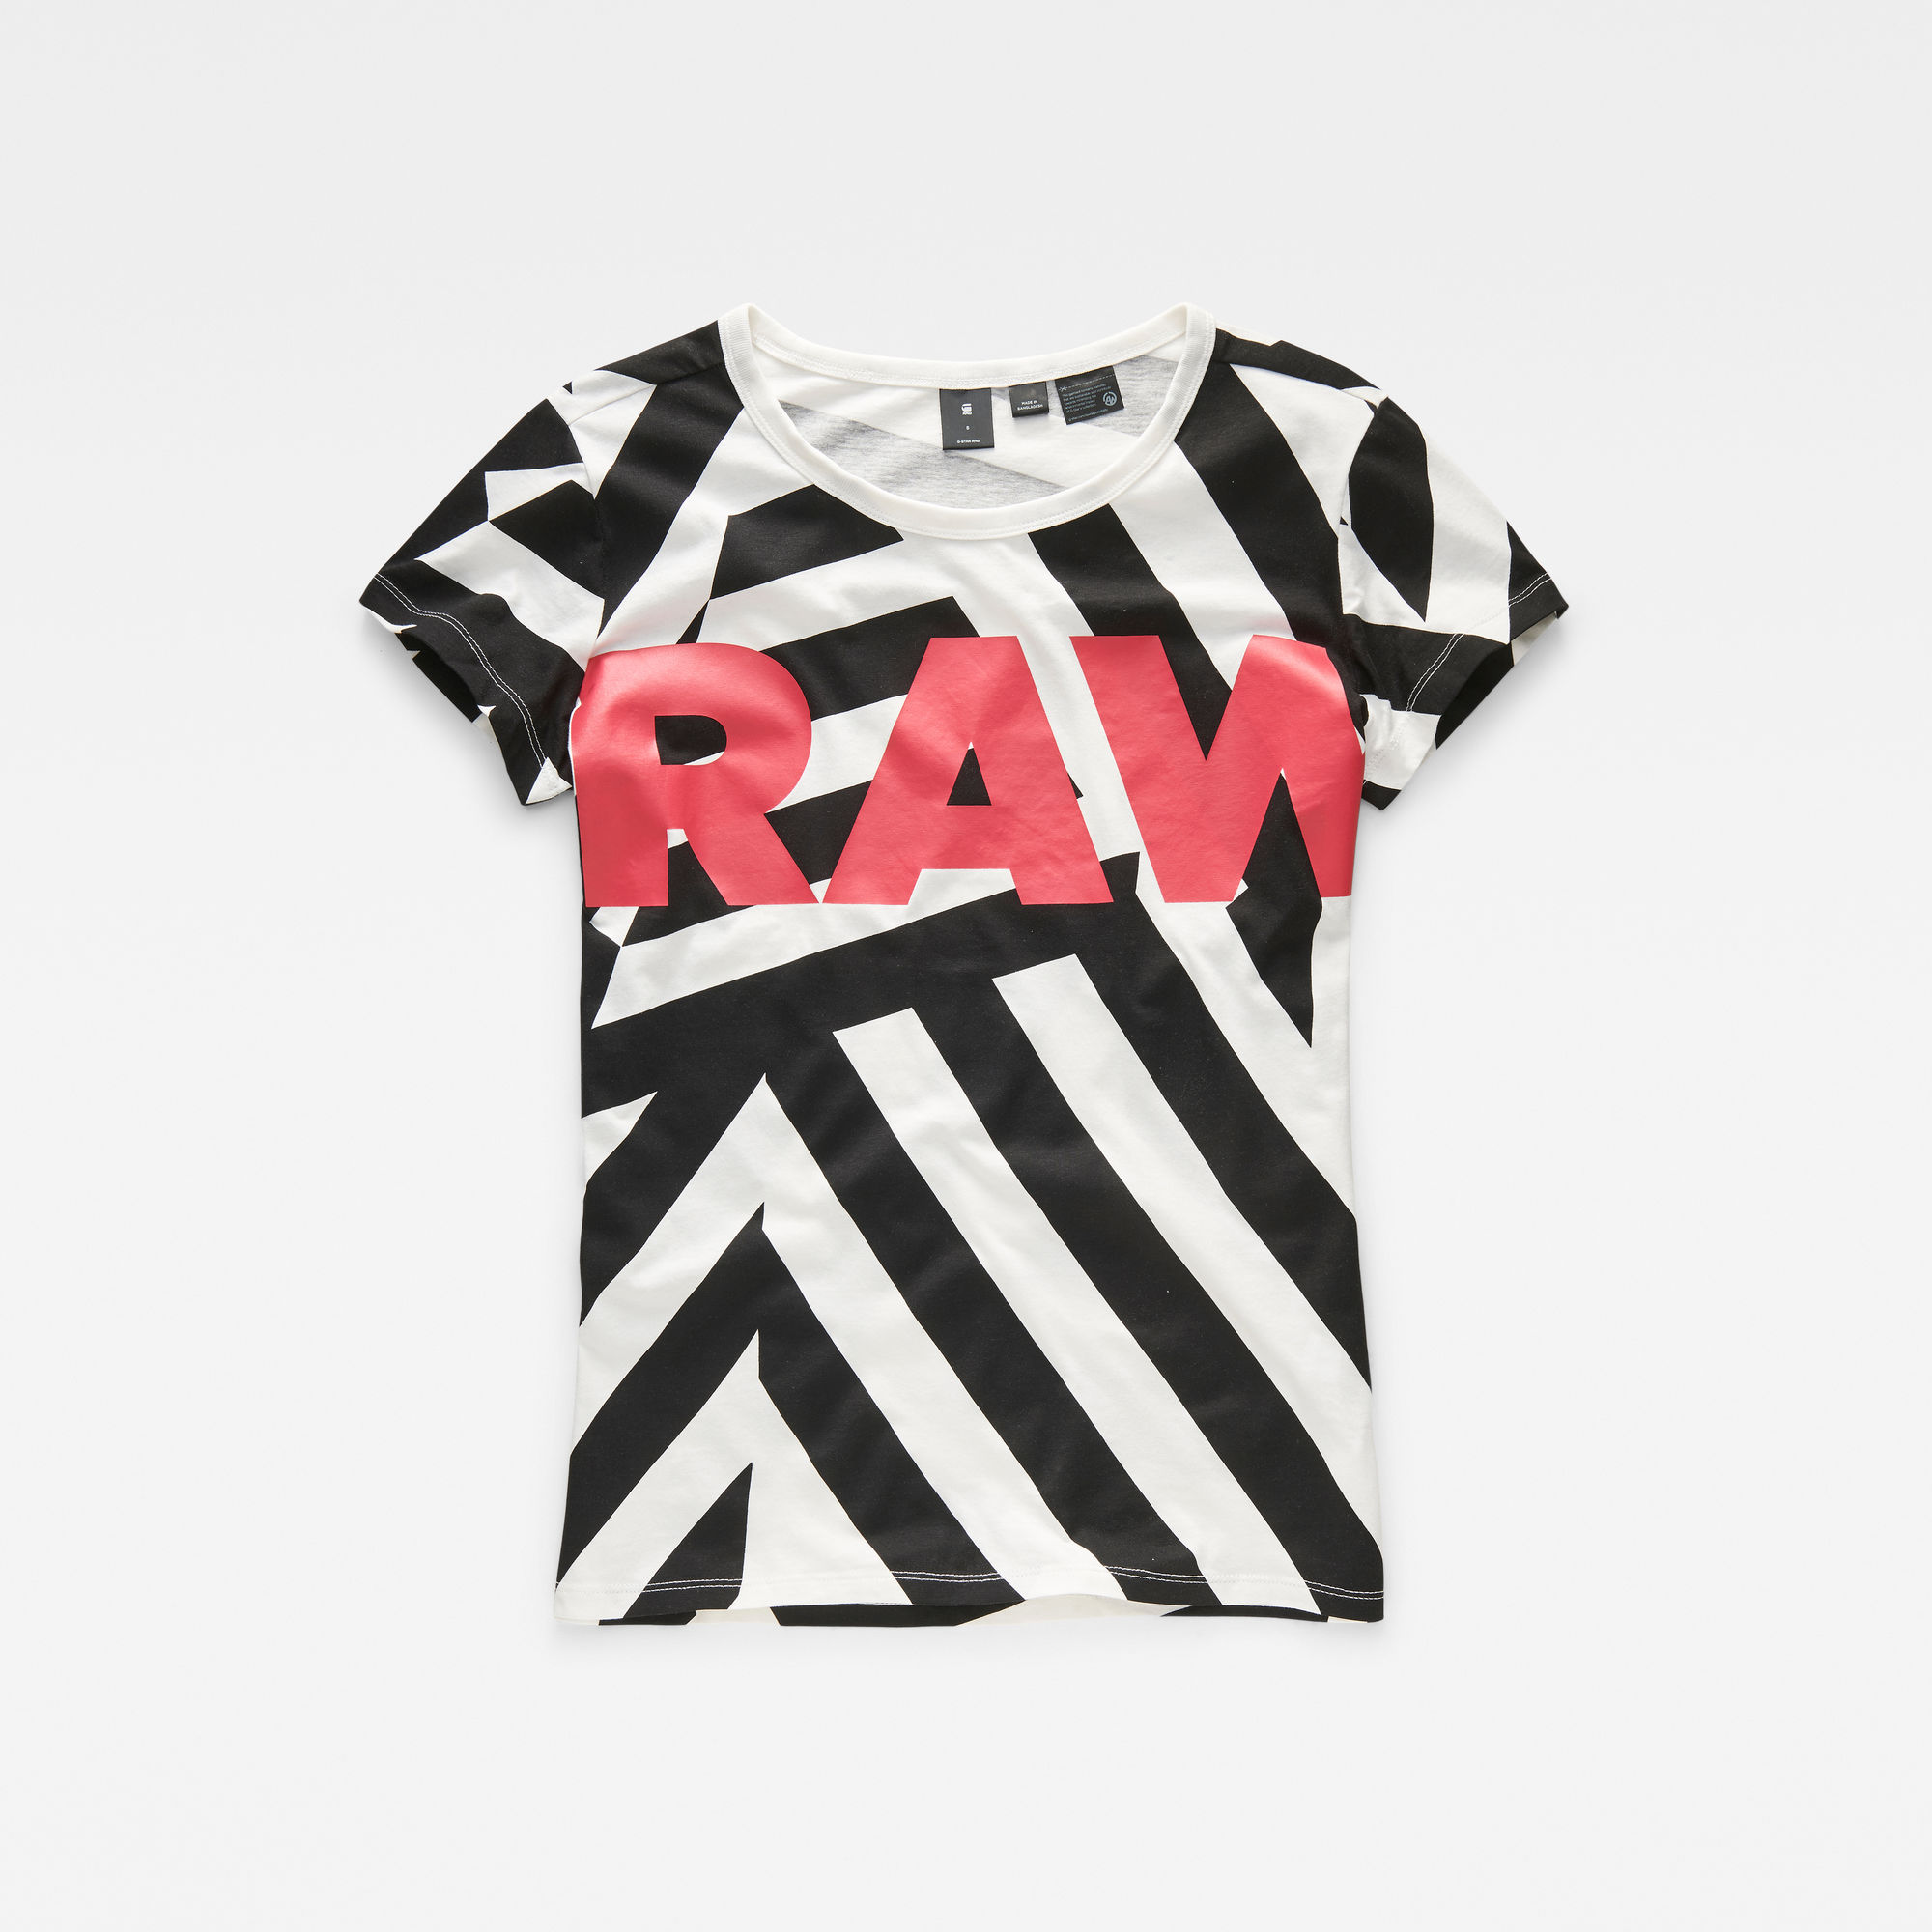 Dazzle Camouflage X25 Print Straight T-Shirt